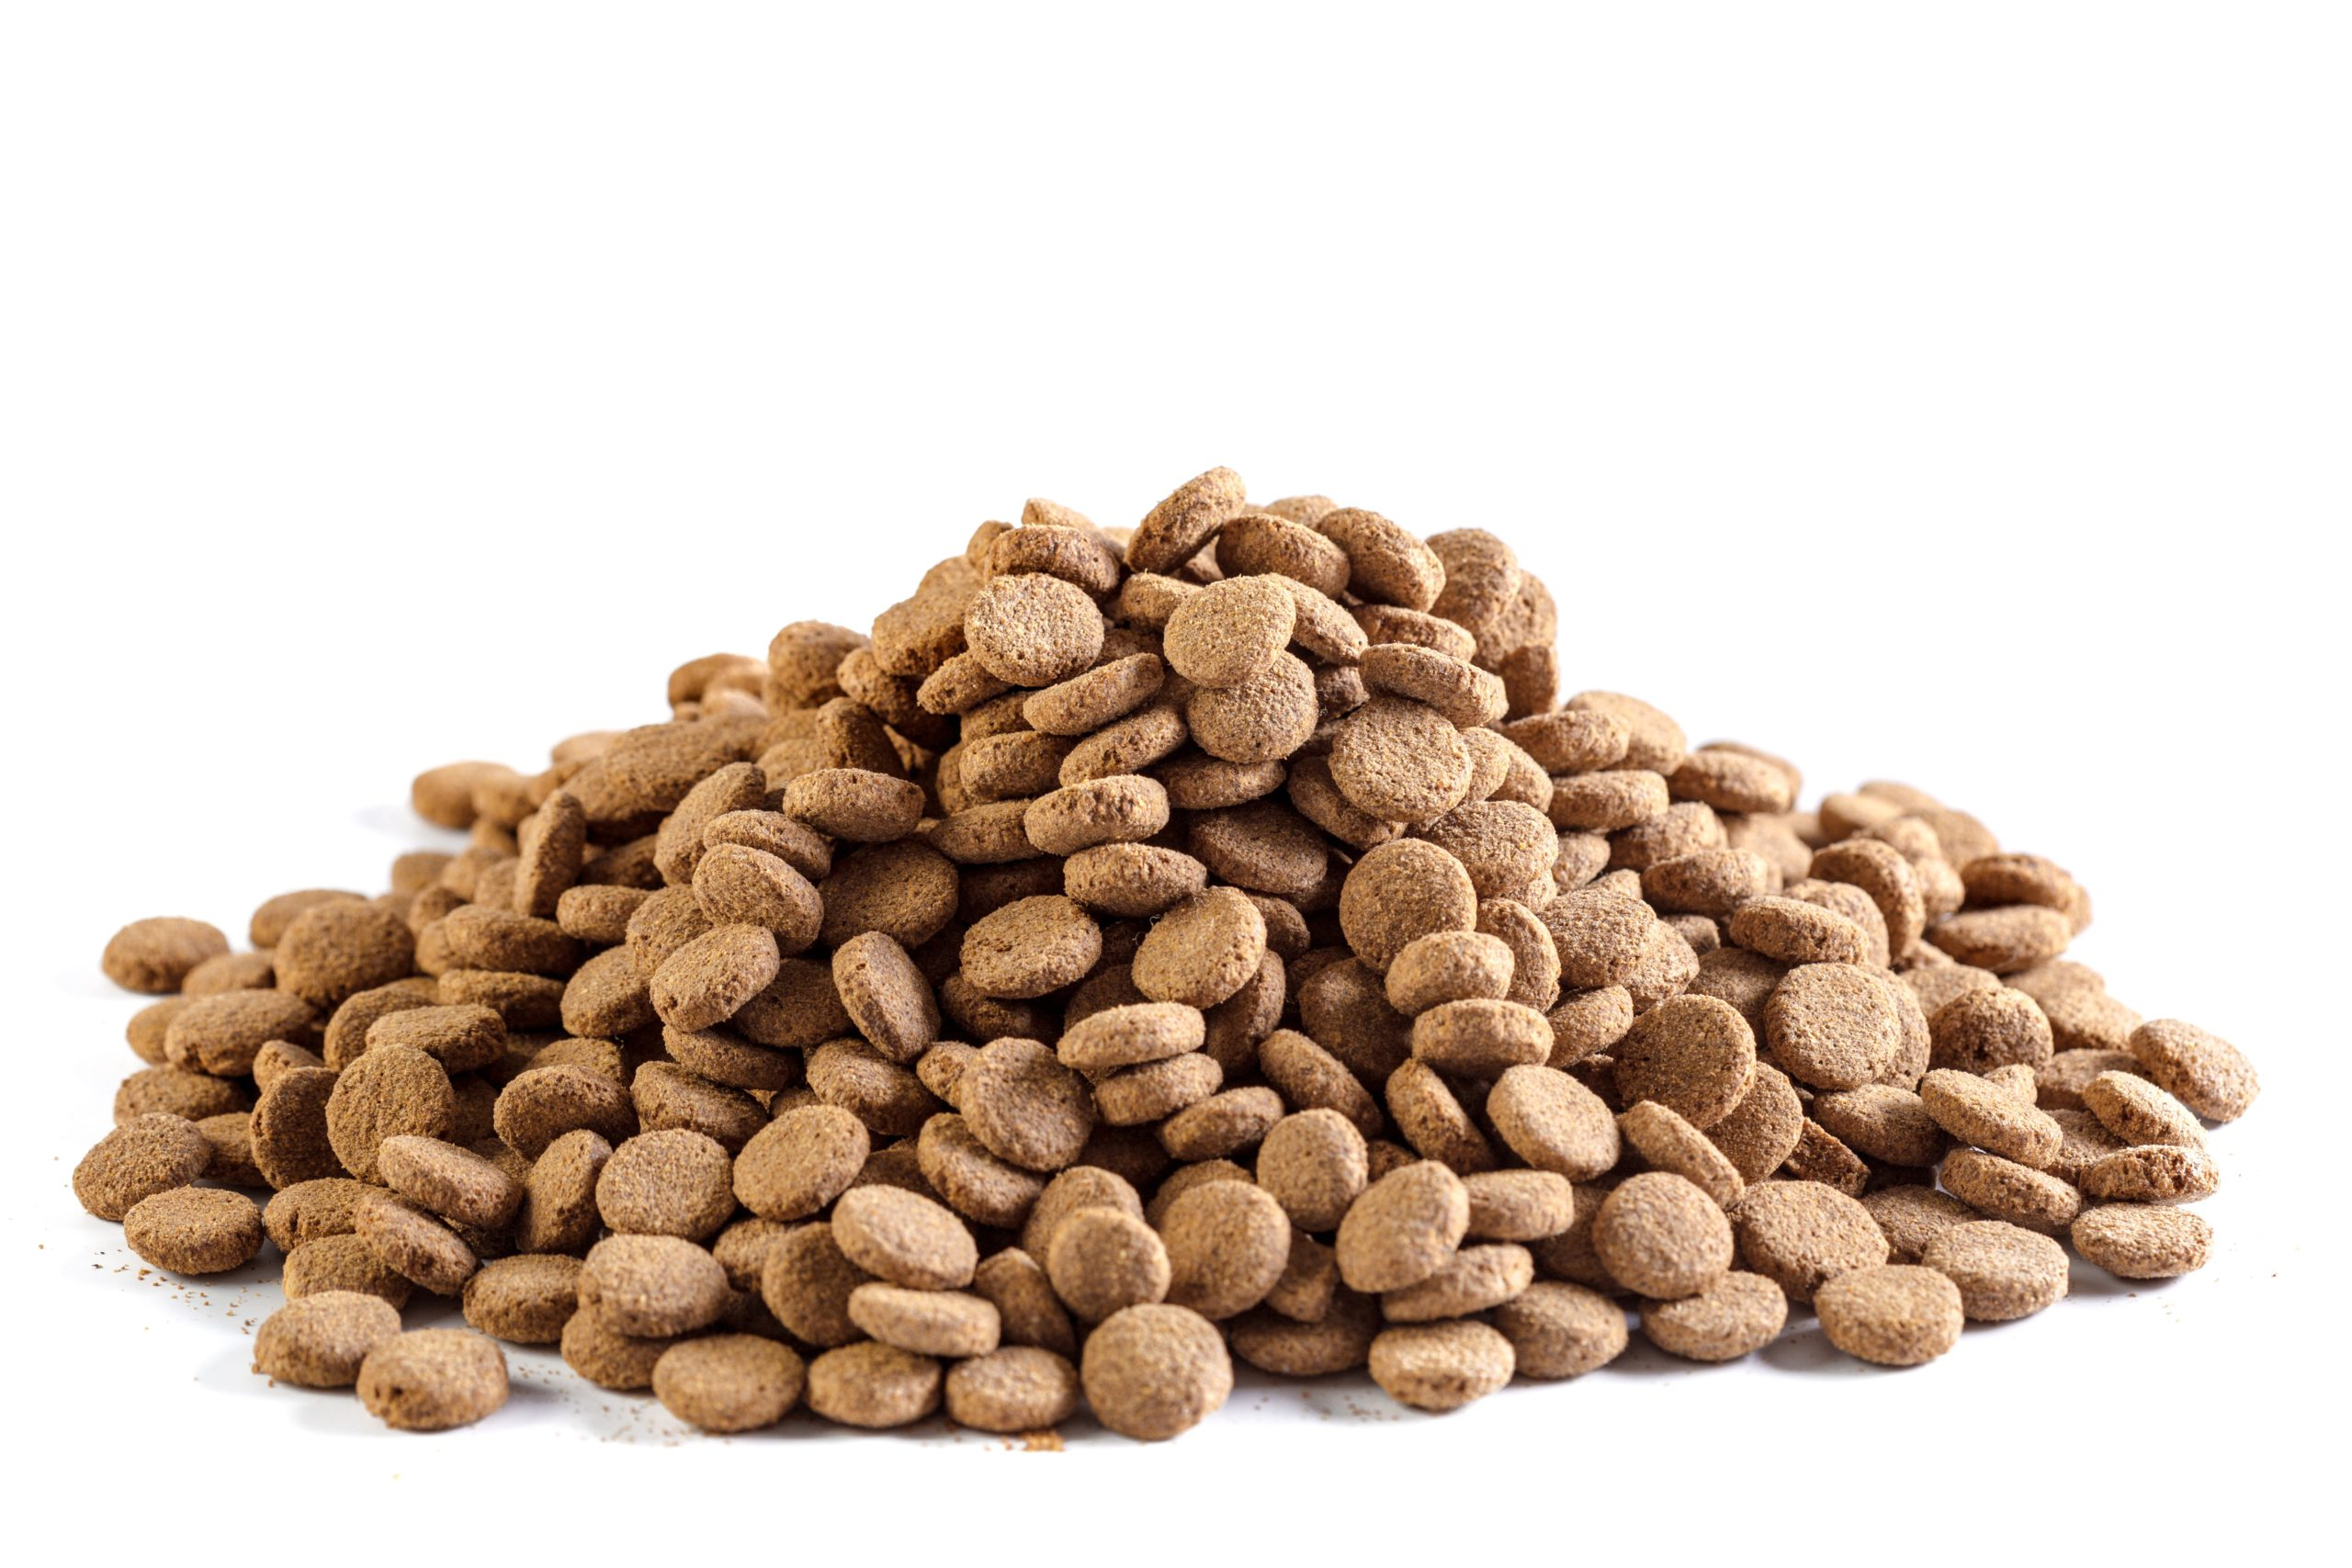 Dry dog food isolated on a white background.